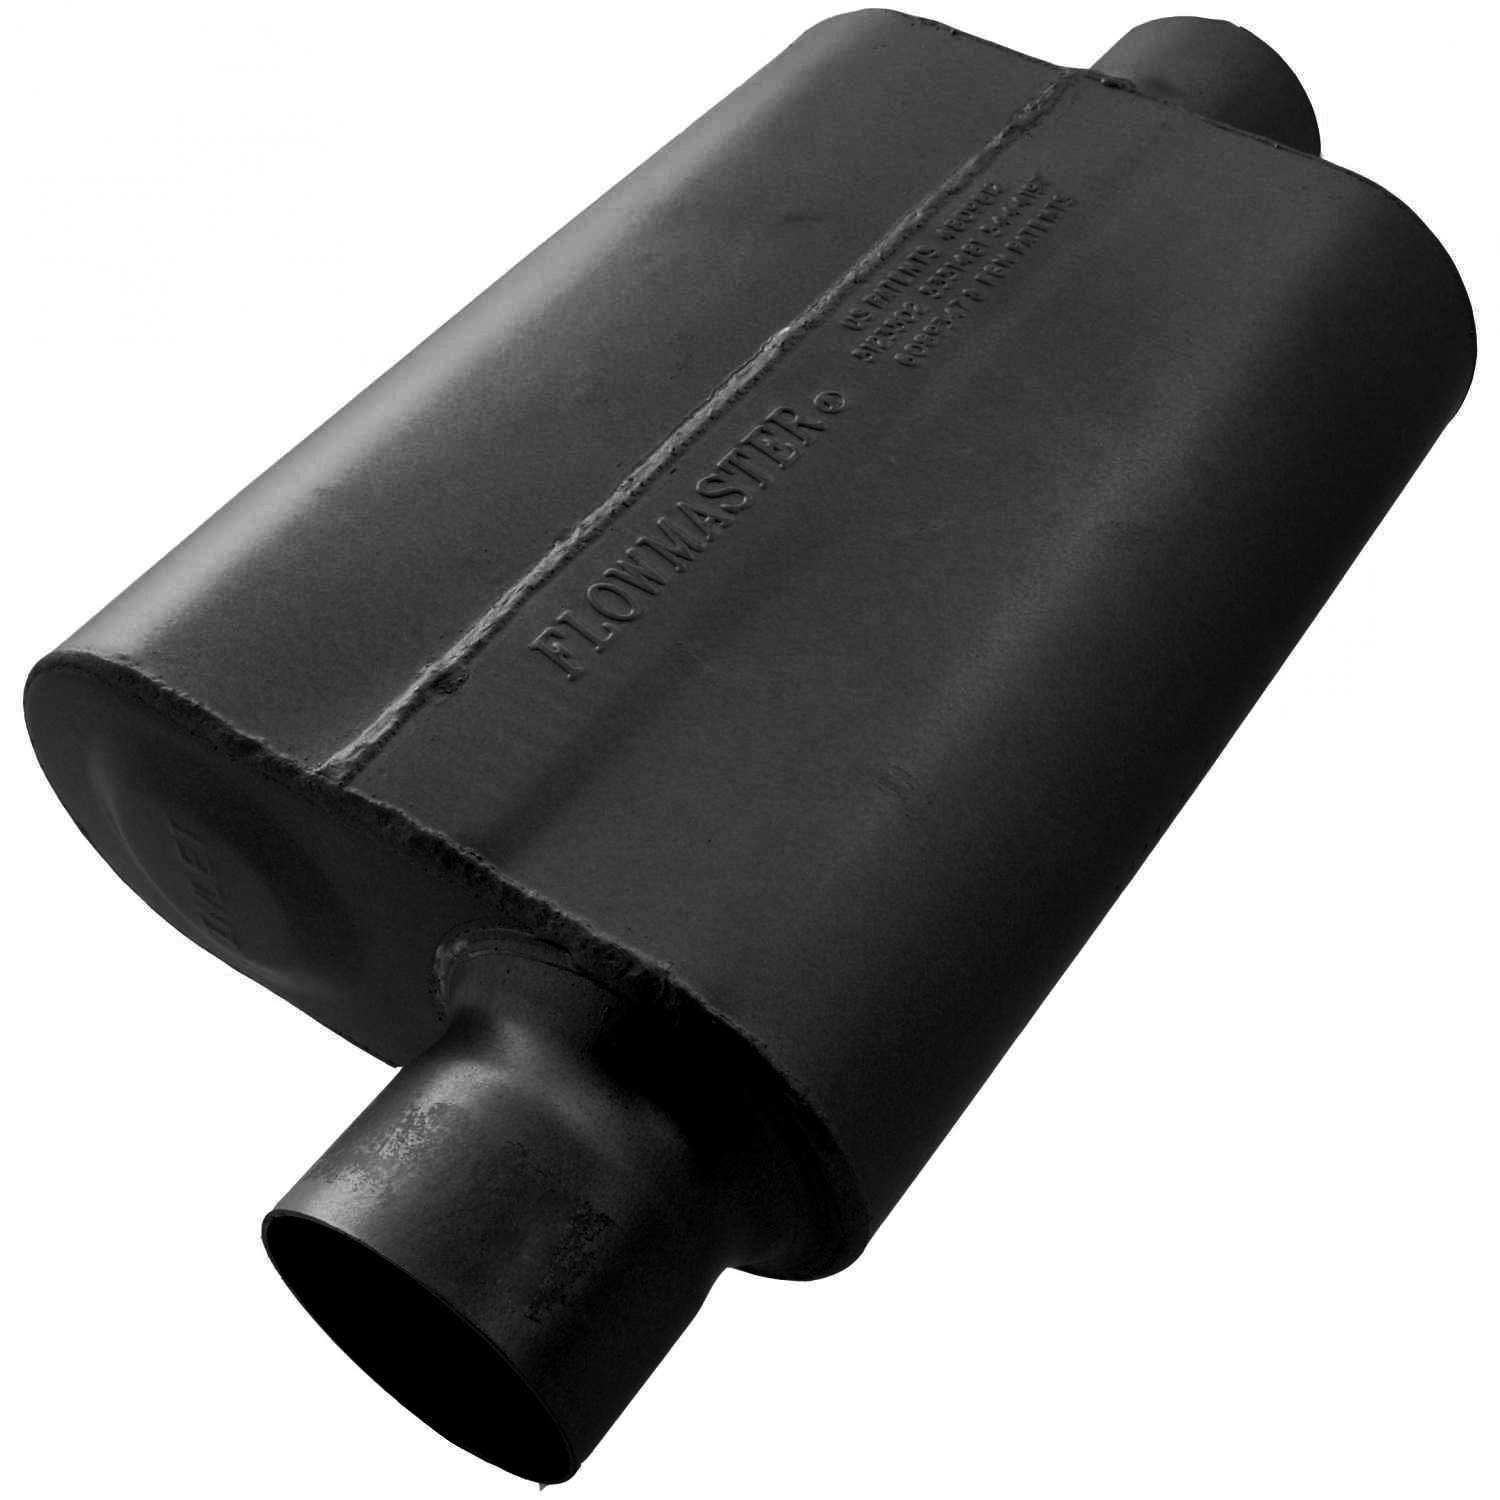 Flowmaster 943041 40 Delta Flow Muffler Aggressive Sound 3.00 Offset IN 3.00 Center OUT